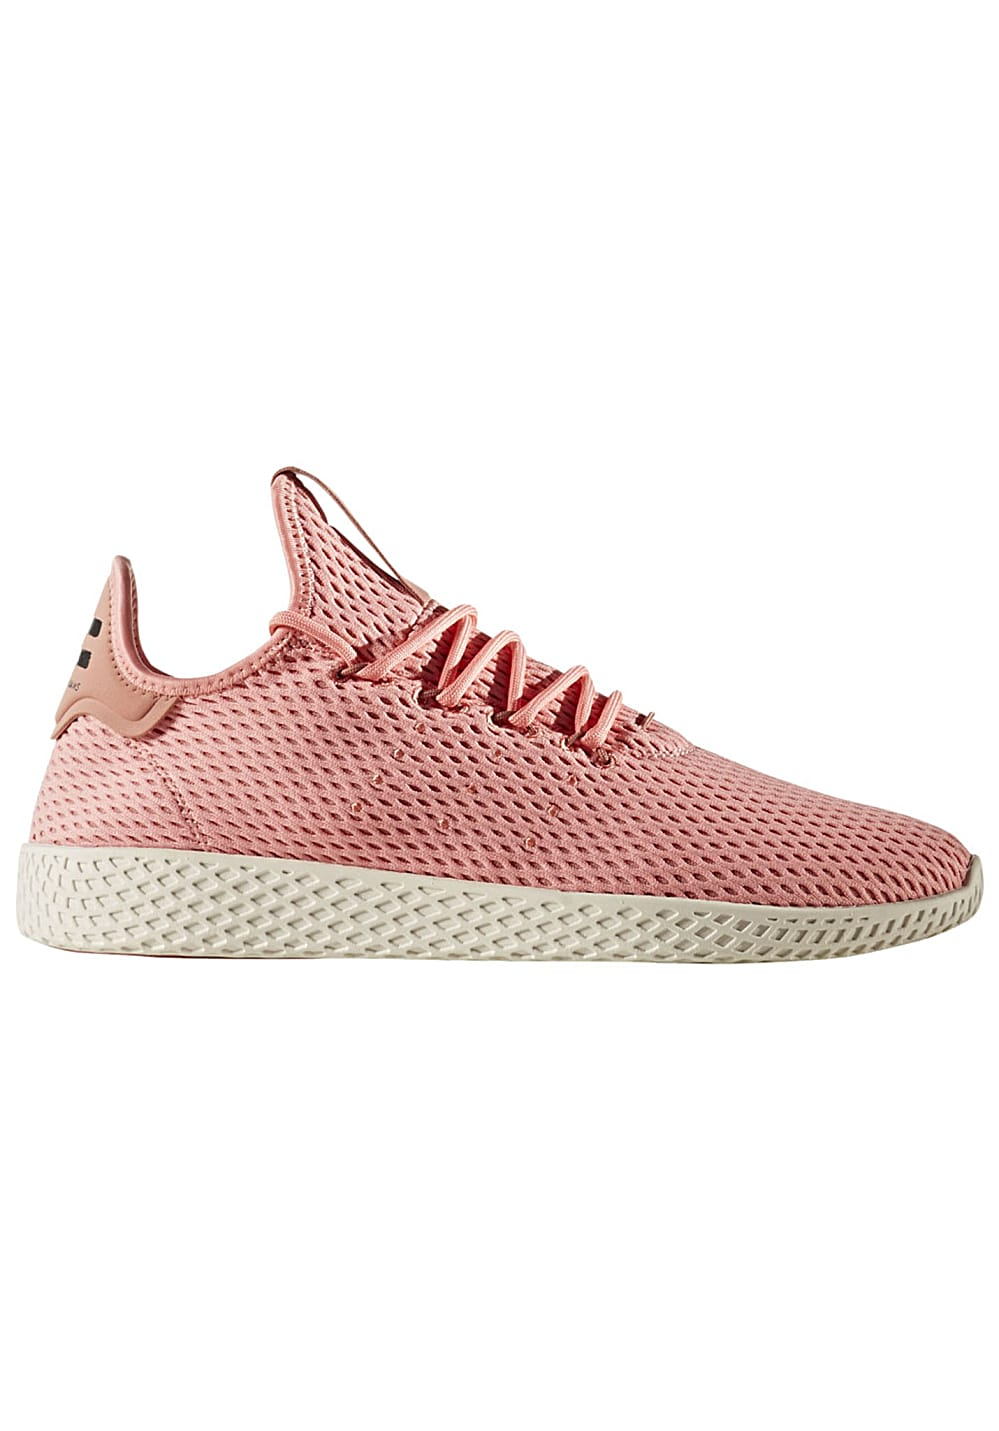 adidas Originals Pharrell Williams Tennis HU - Sneaker - Pink ...